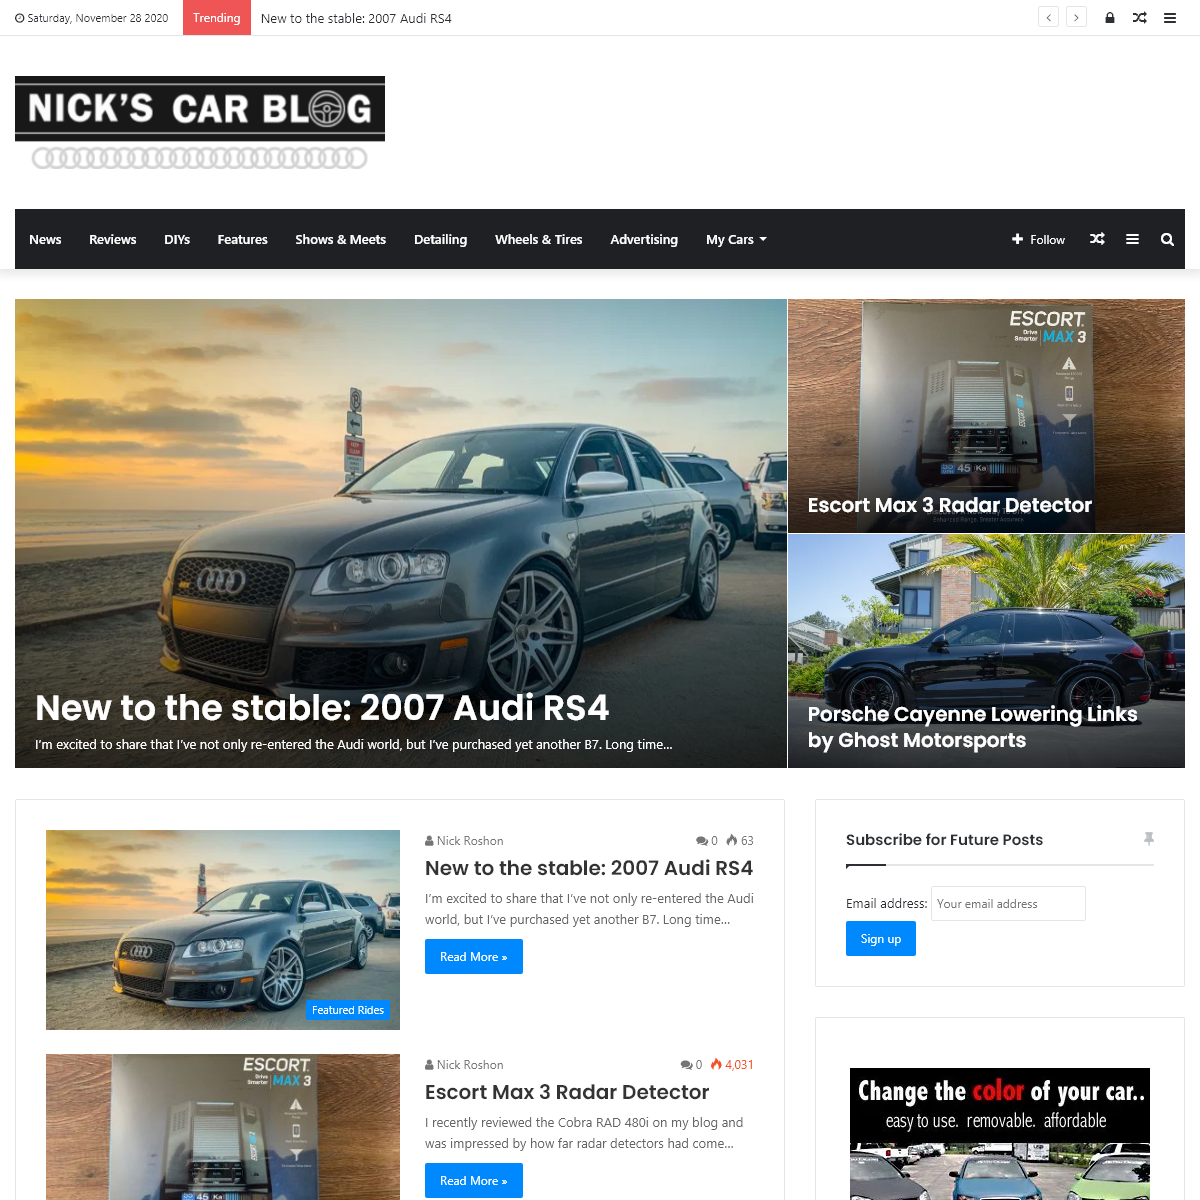 Nick`s Car Blog – A blog about Audis by Nick Roshon